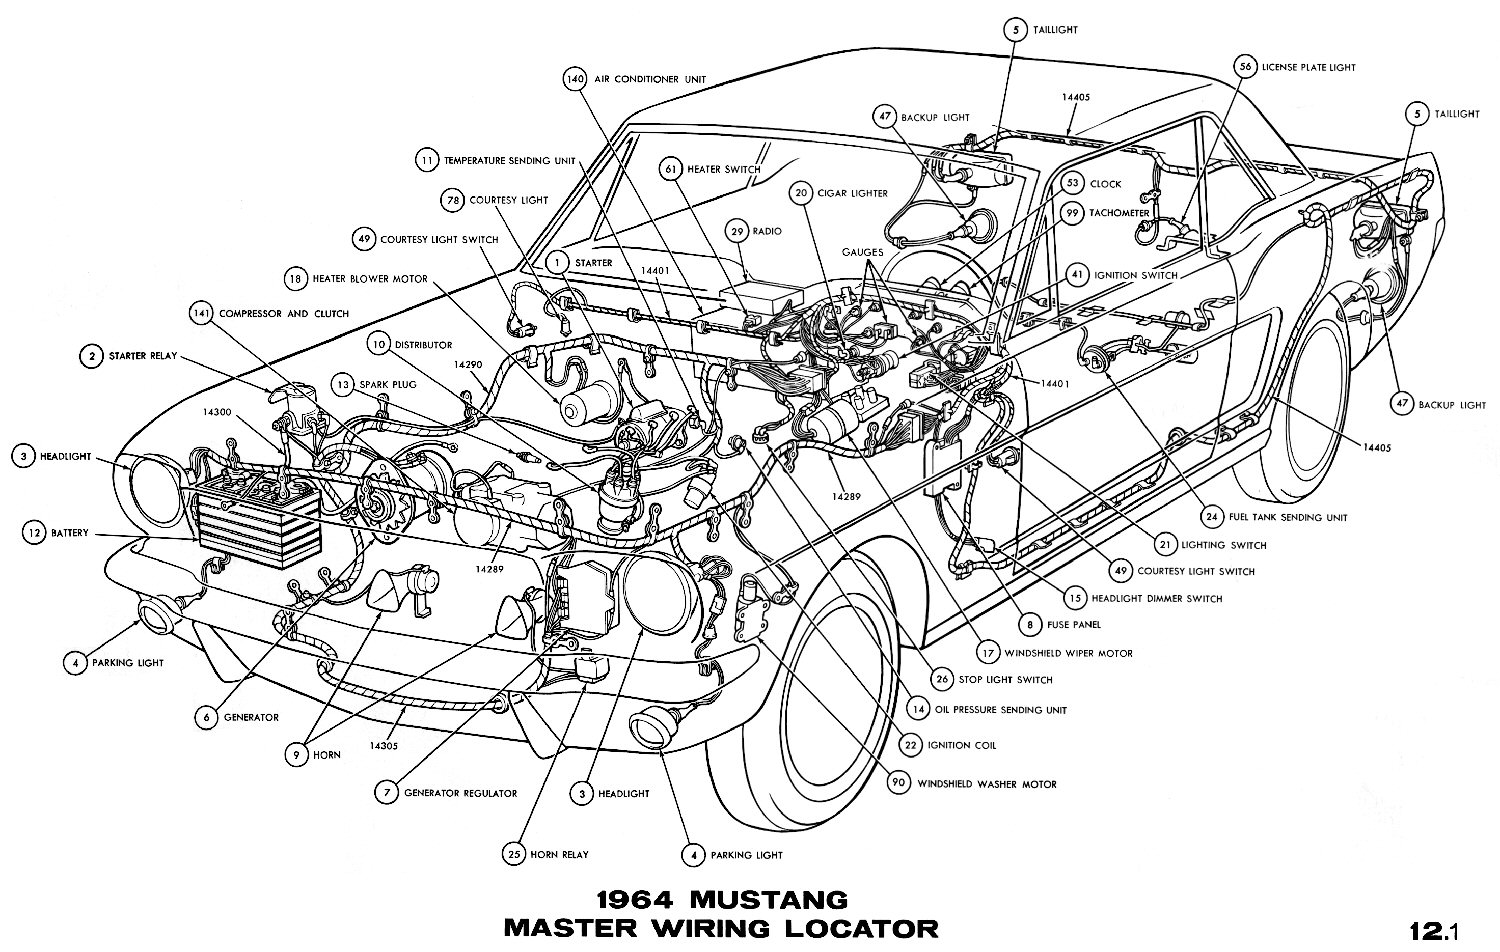 1964a 1964 mustang wiring diagrams average joe restoration 66 mustang wiring diagram at nearapp.co